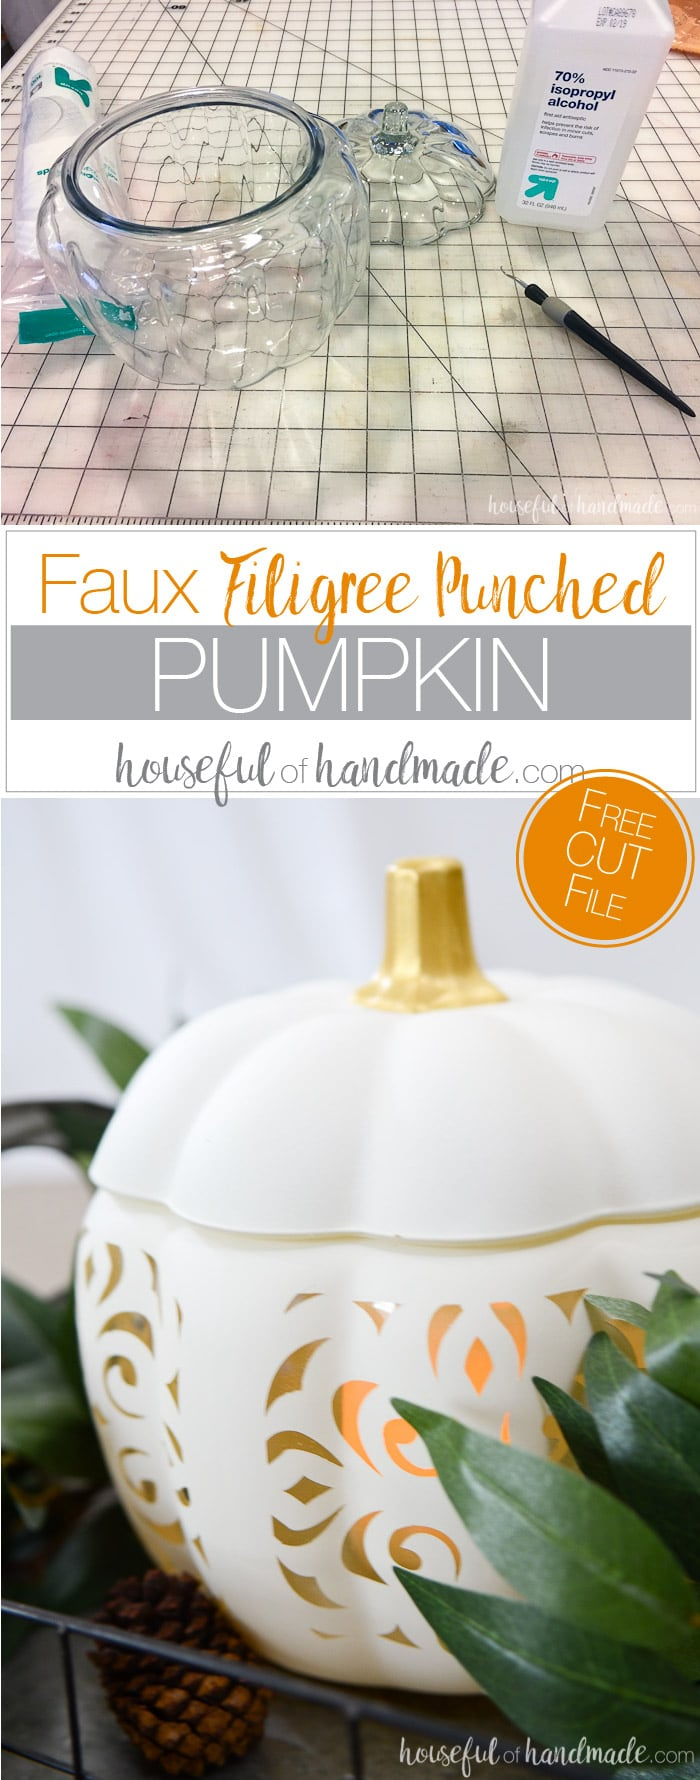 Turn an inexpensive glass pumpkin into a Pottery Barn inspired piece for fall. This beautiful faux filigree punched pumpkin is easy to DIY and looks expensive! Housefulofhandmade.com